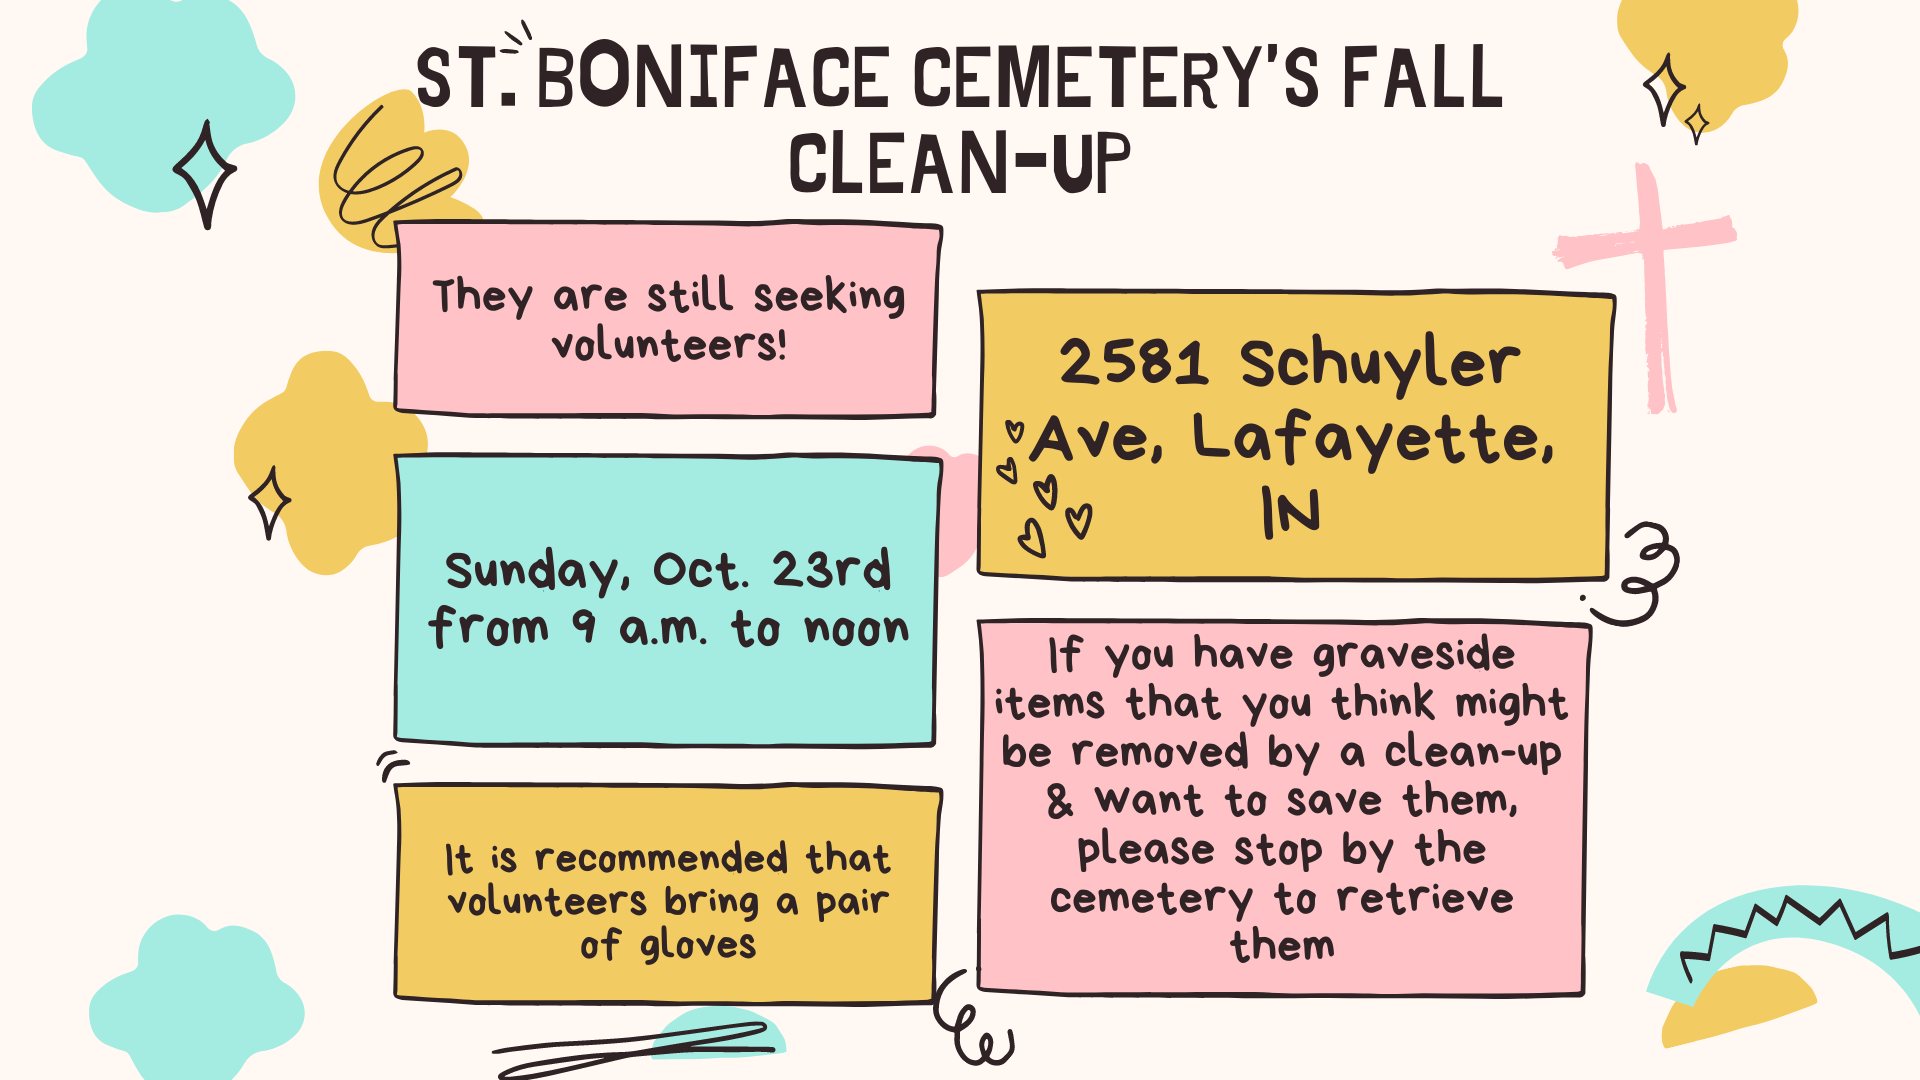 St. Boniface Cemetery's fall clean-up (Presentation) (1920 x 1080 px)